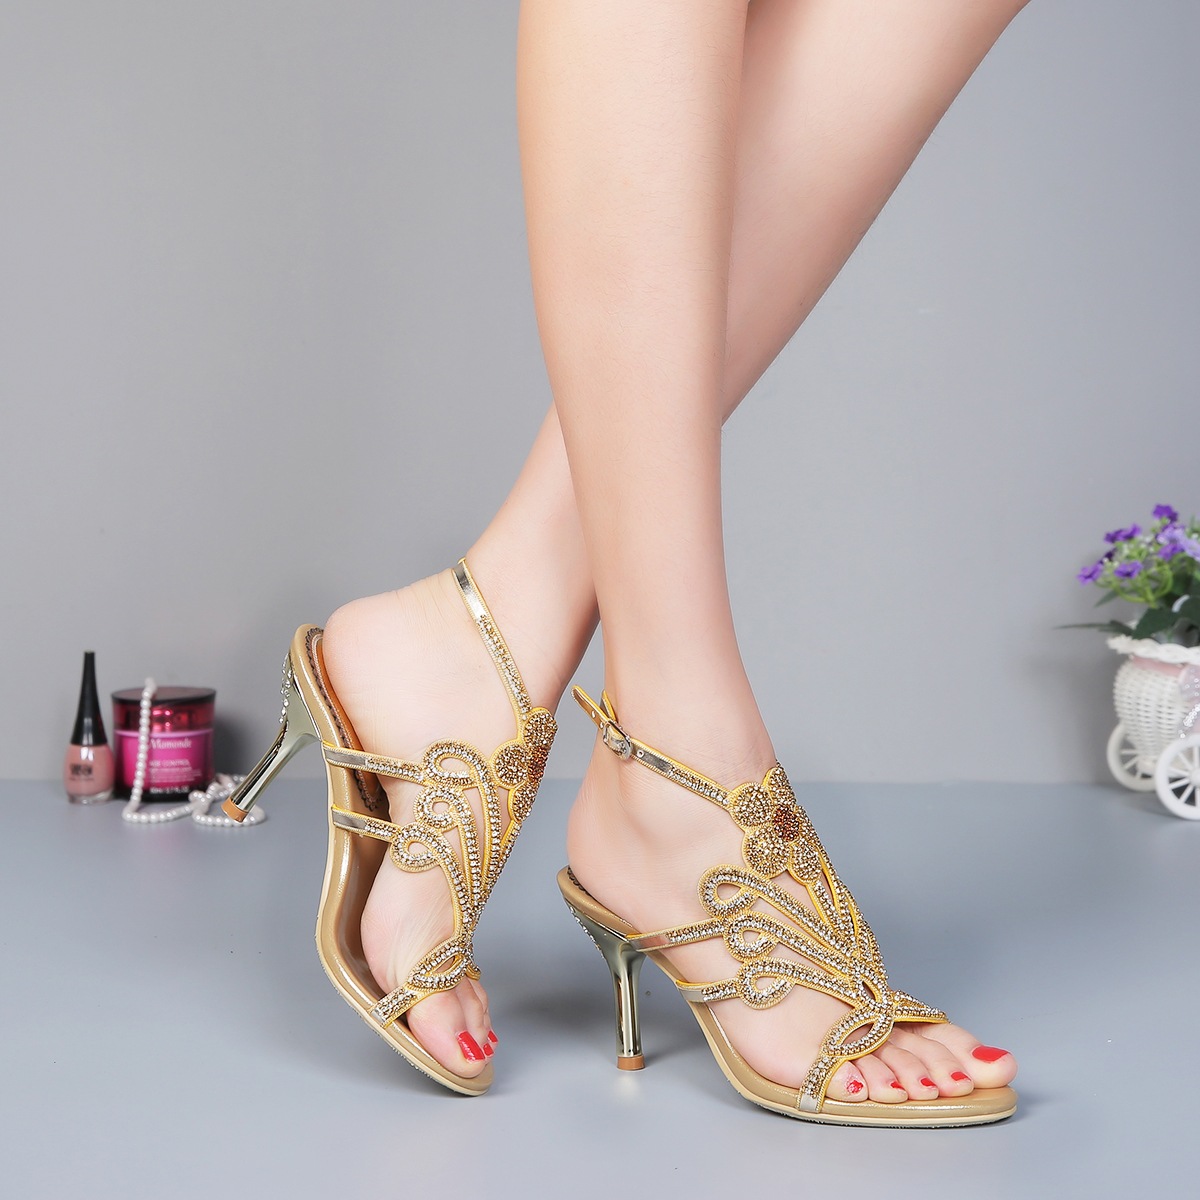 Gold Strappy Heels For Wedding